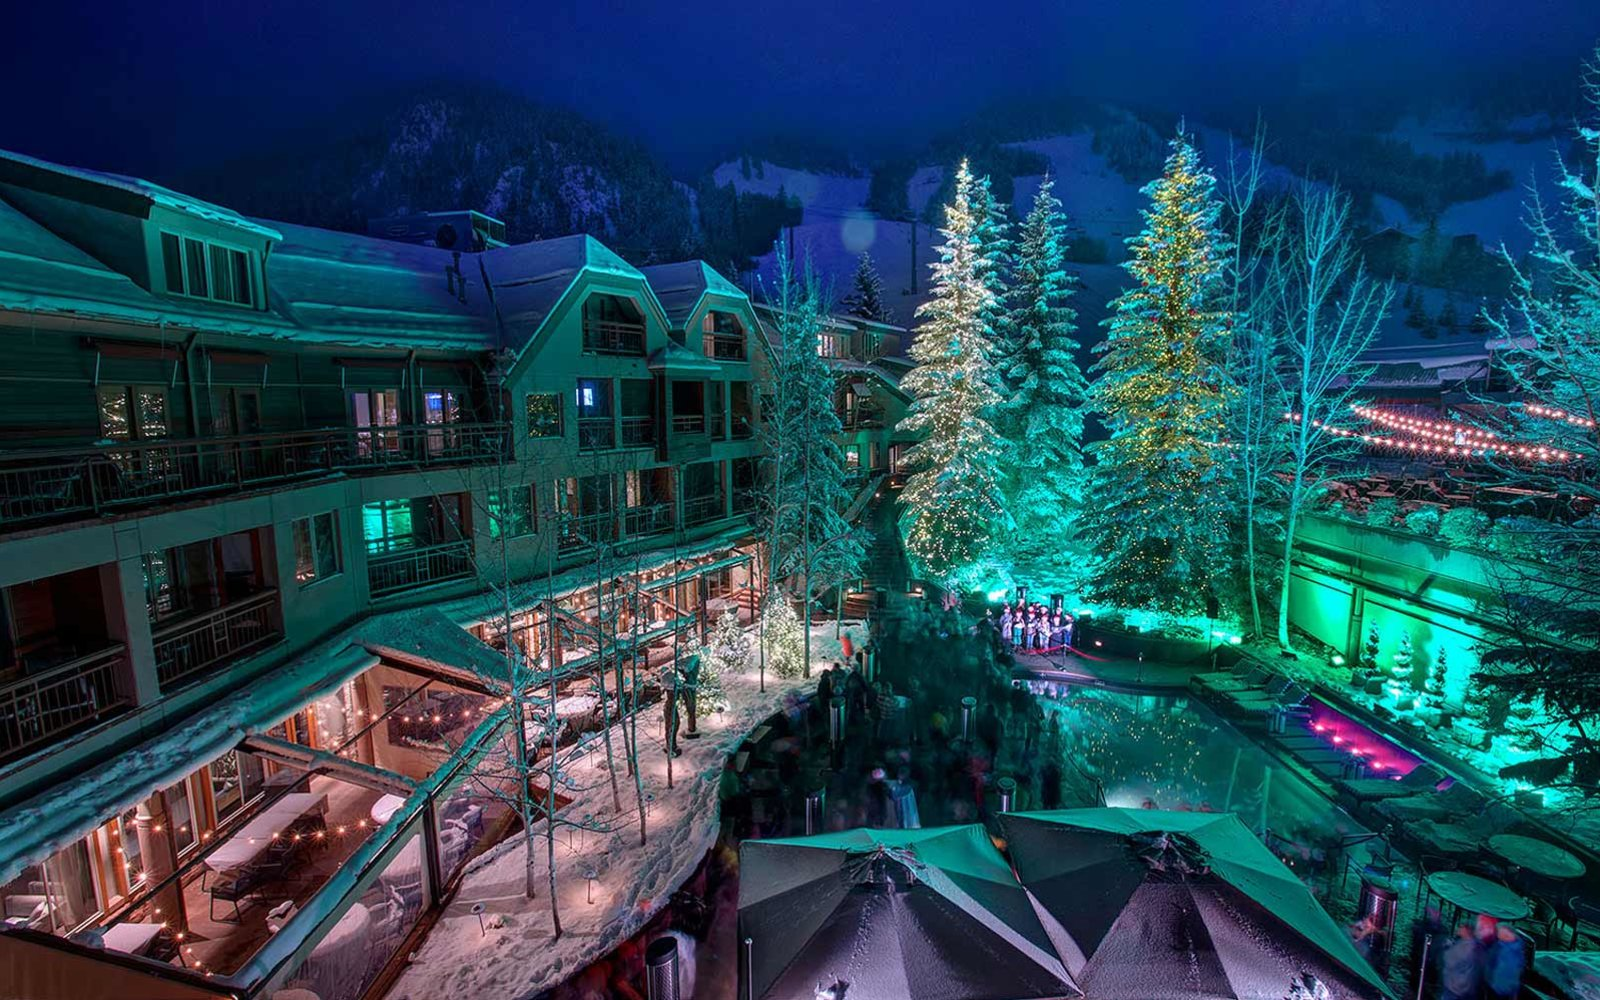 Little Nell, in Aspen, Colorado at night